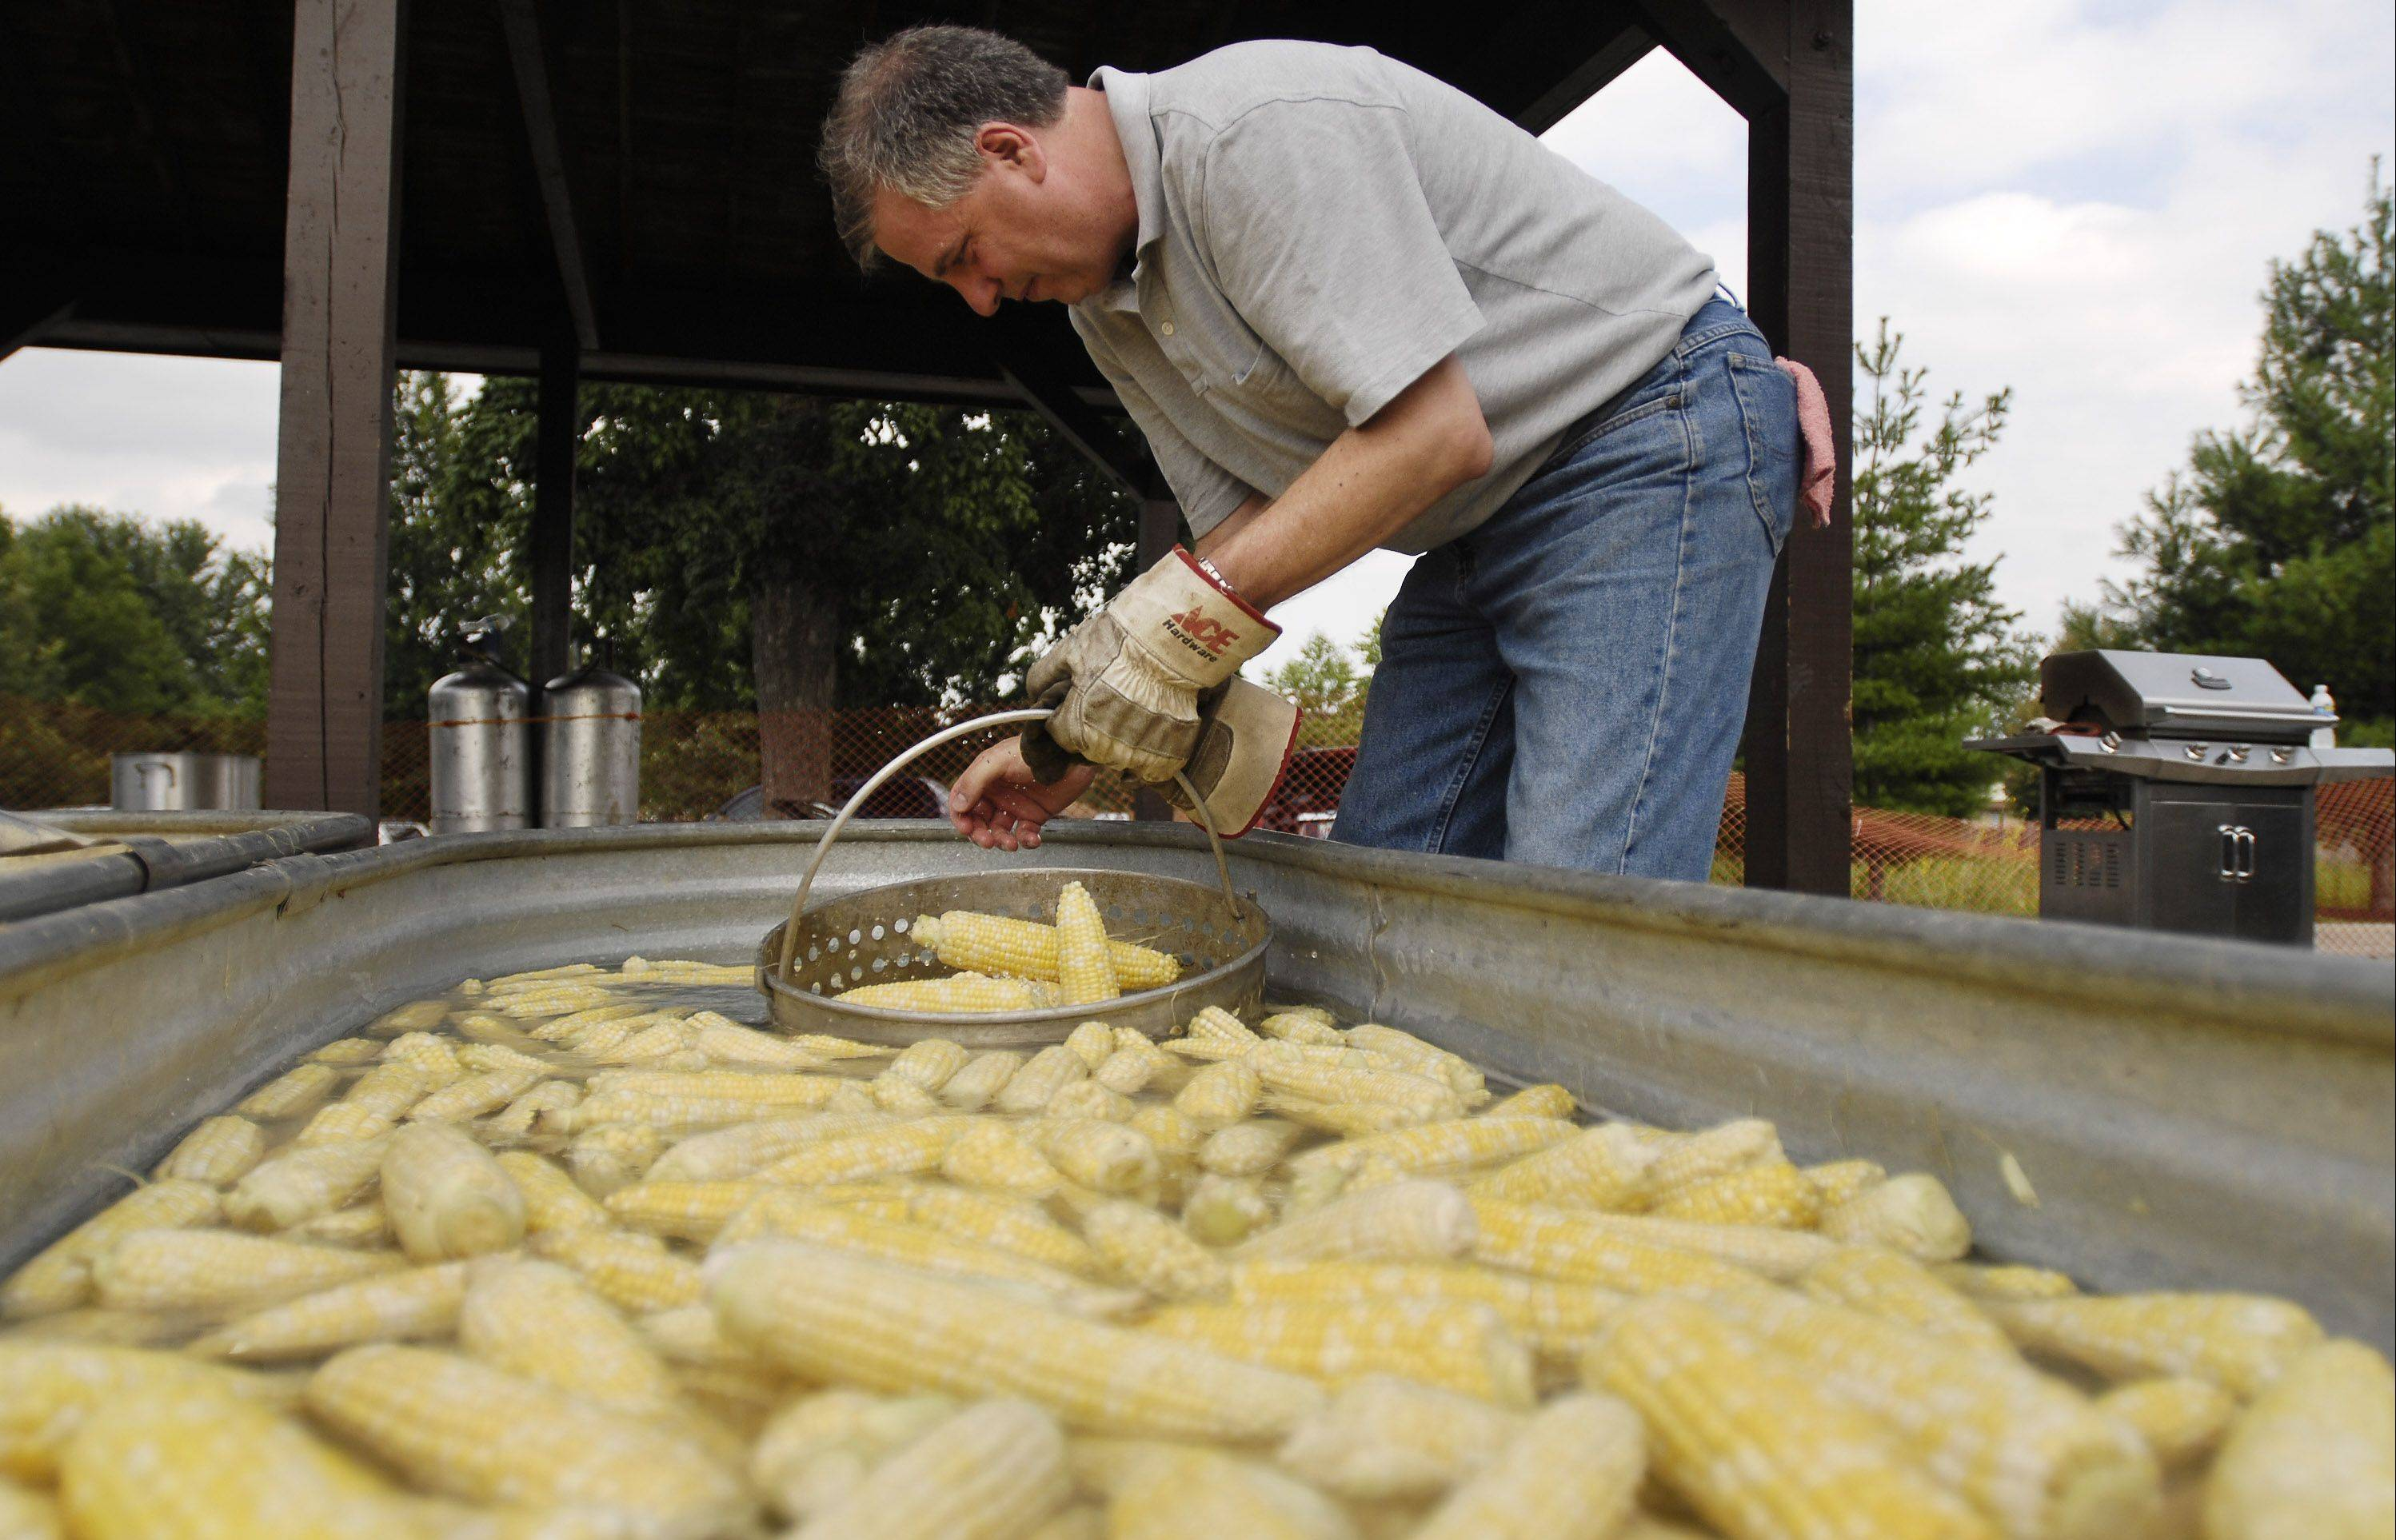 Organizers estimate they'll cook up 10,000 ears of sweet corn during the Sugar Grove Corn Boil festival.